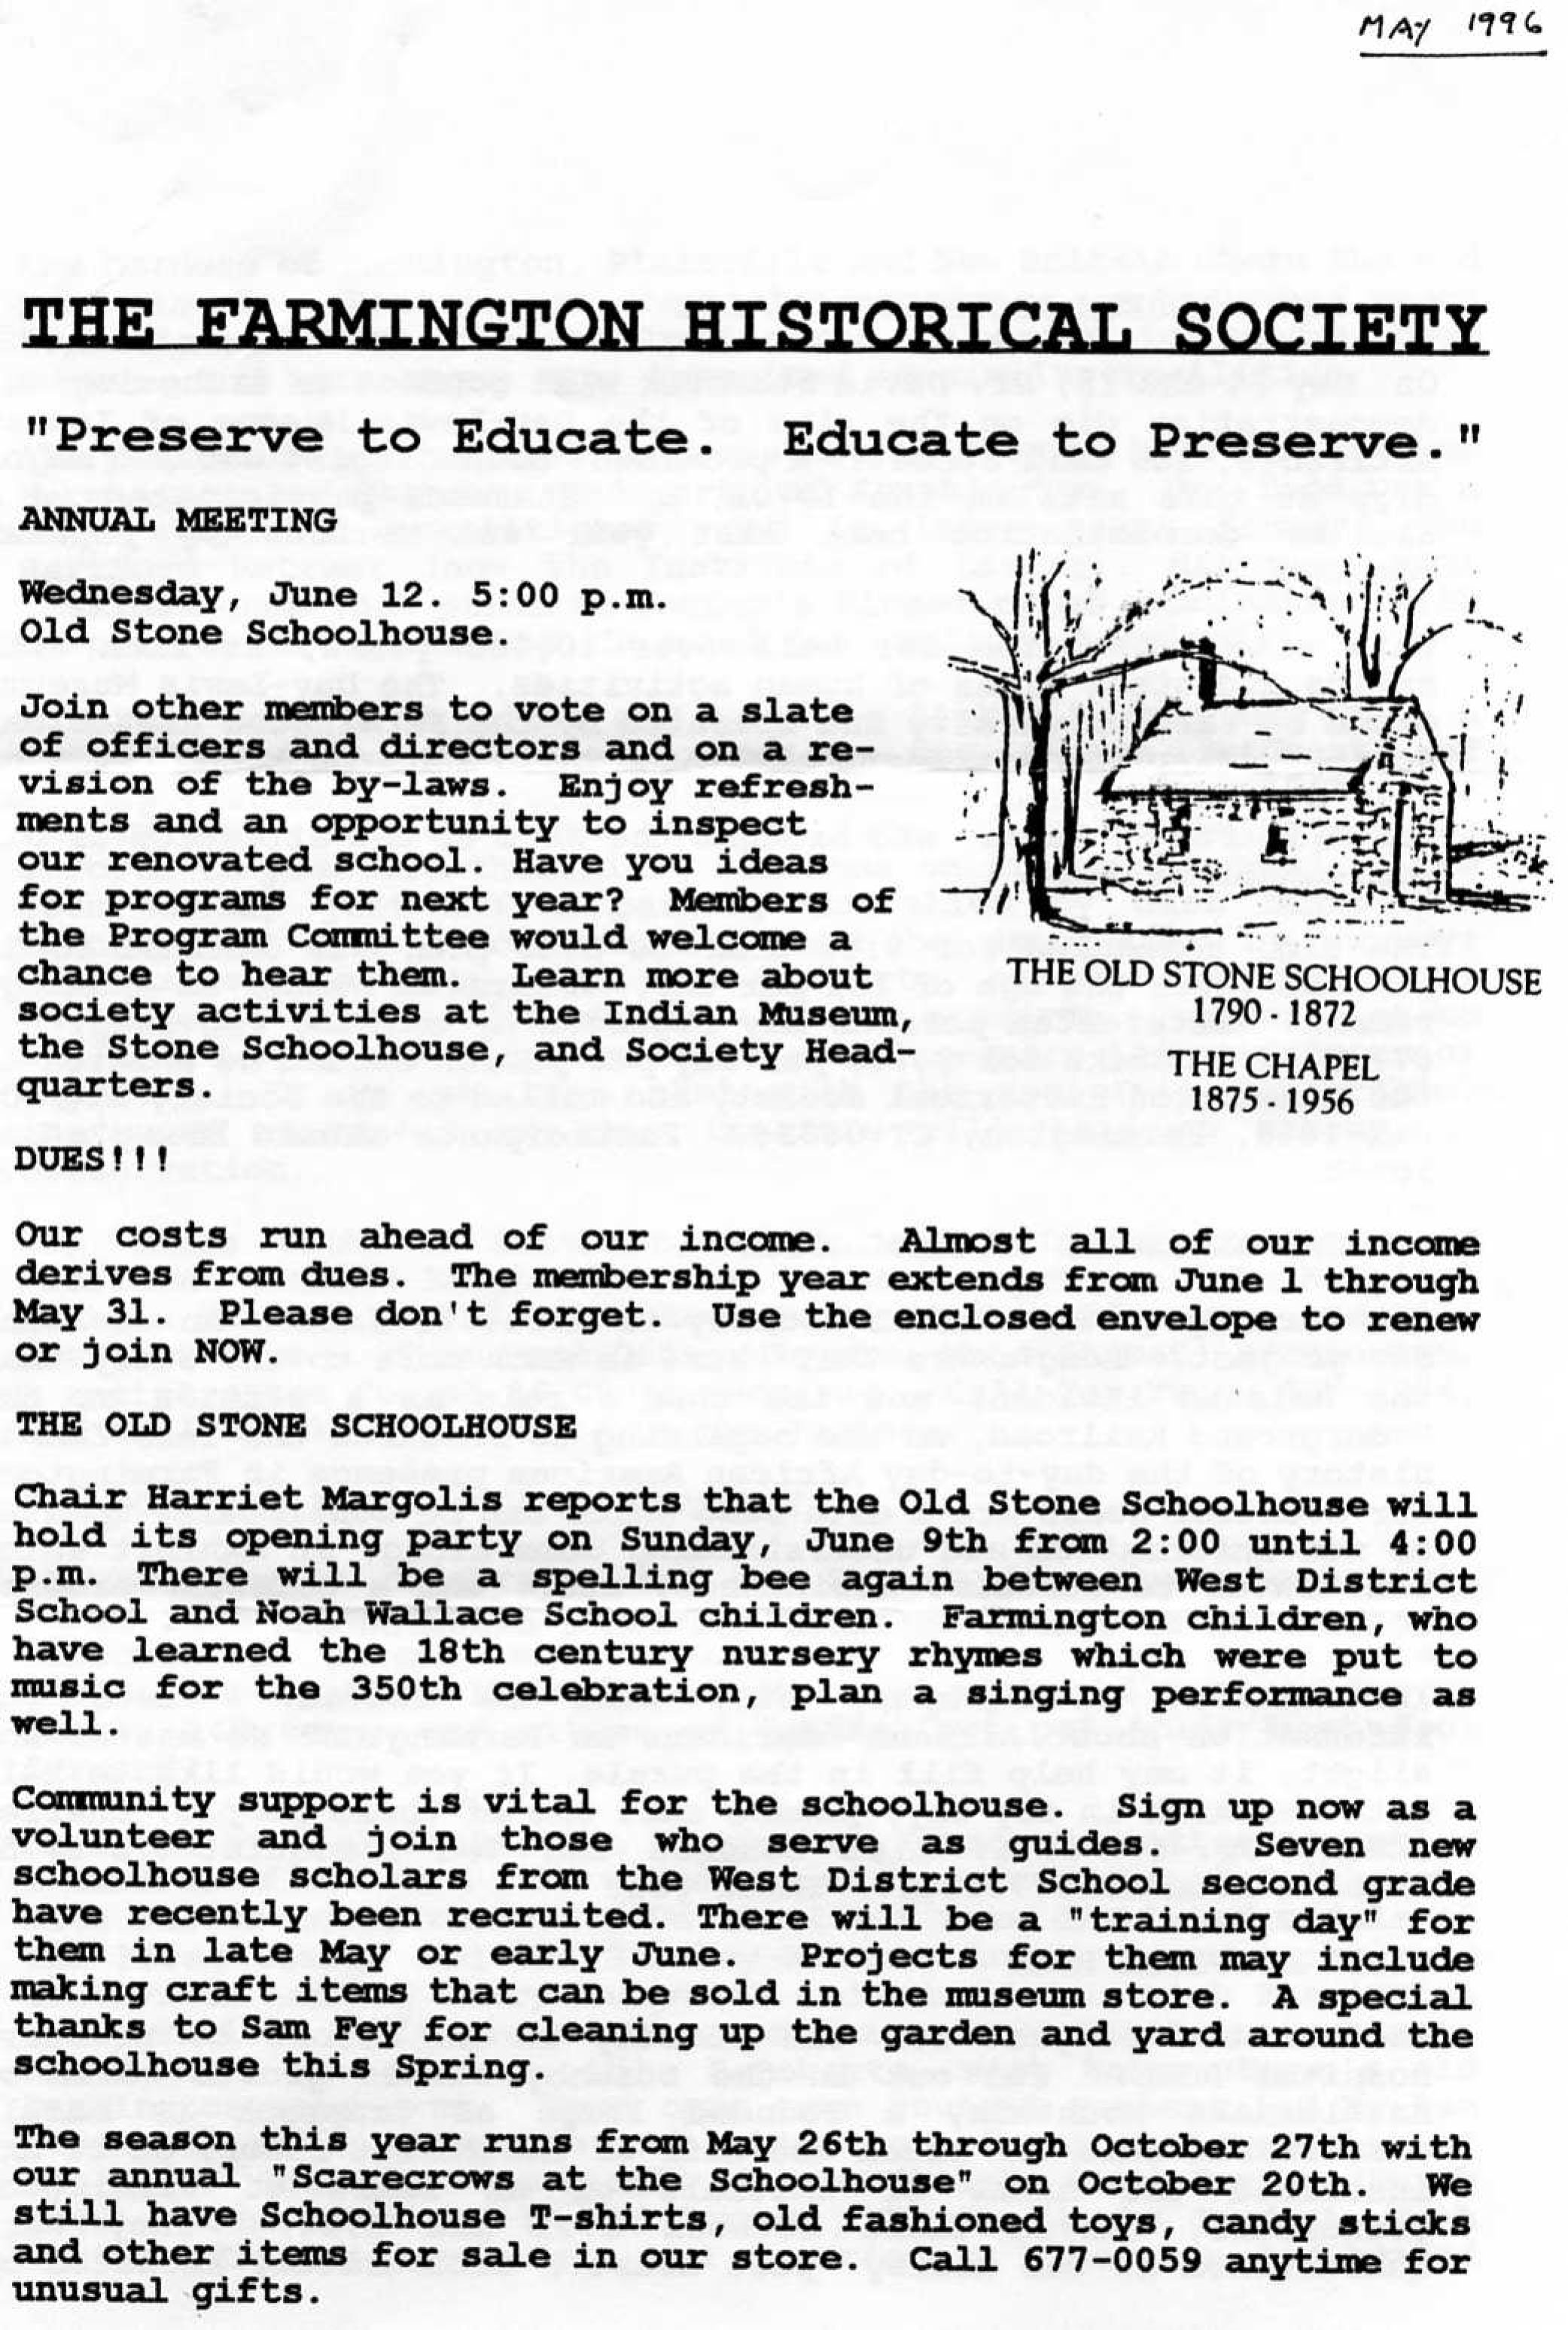 http://fhs-ct.org/1996/05/09/may-1996-newsletter/